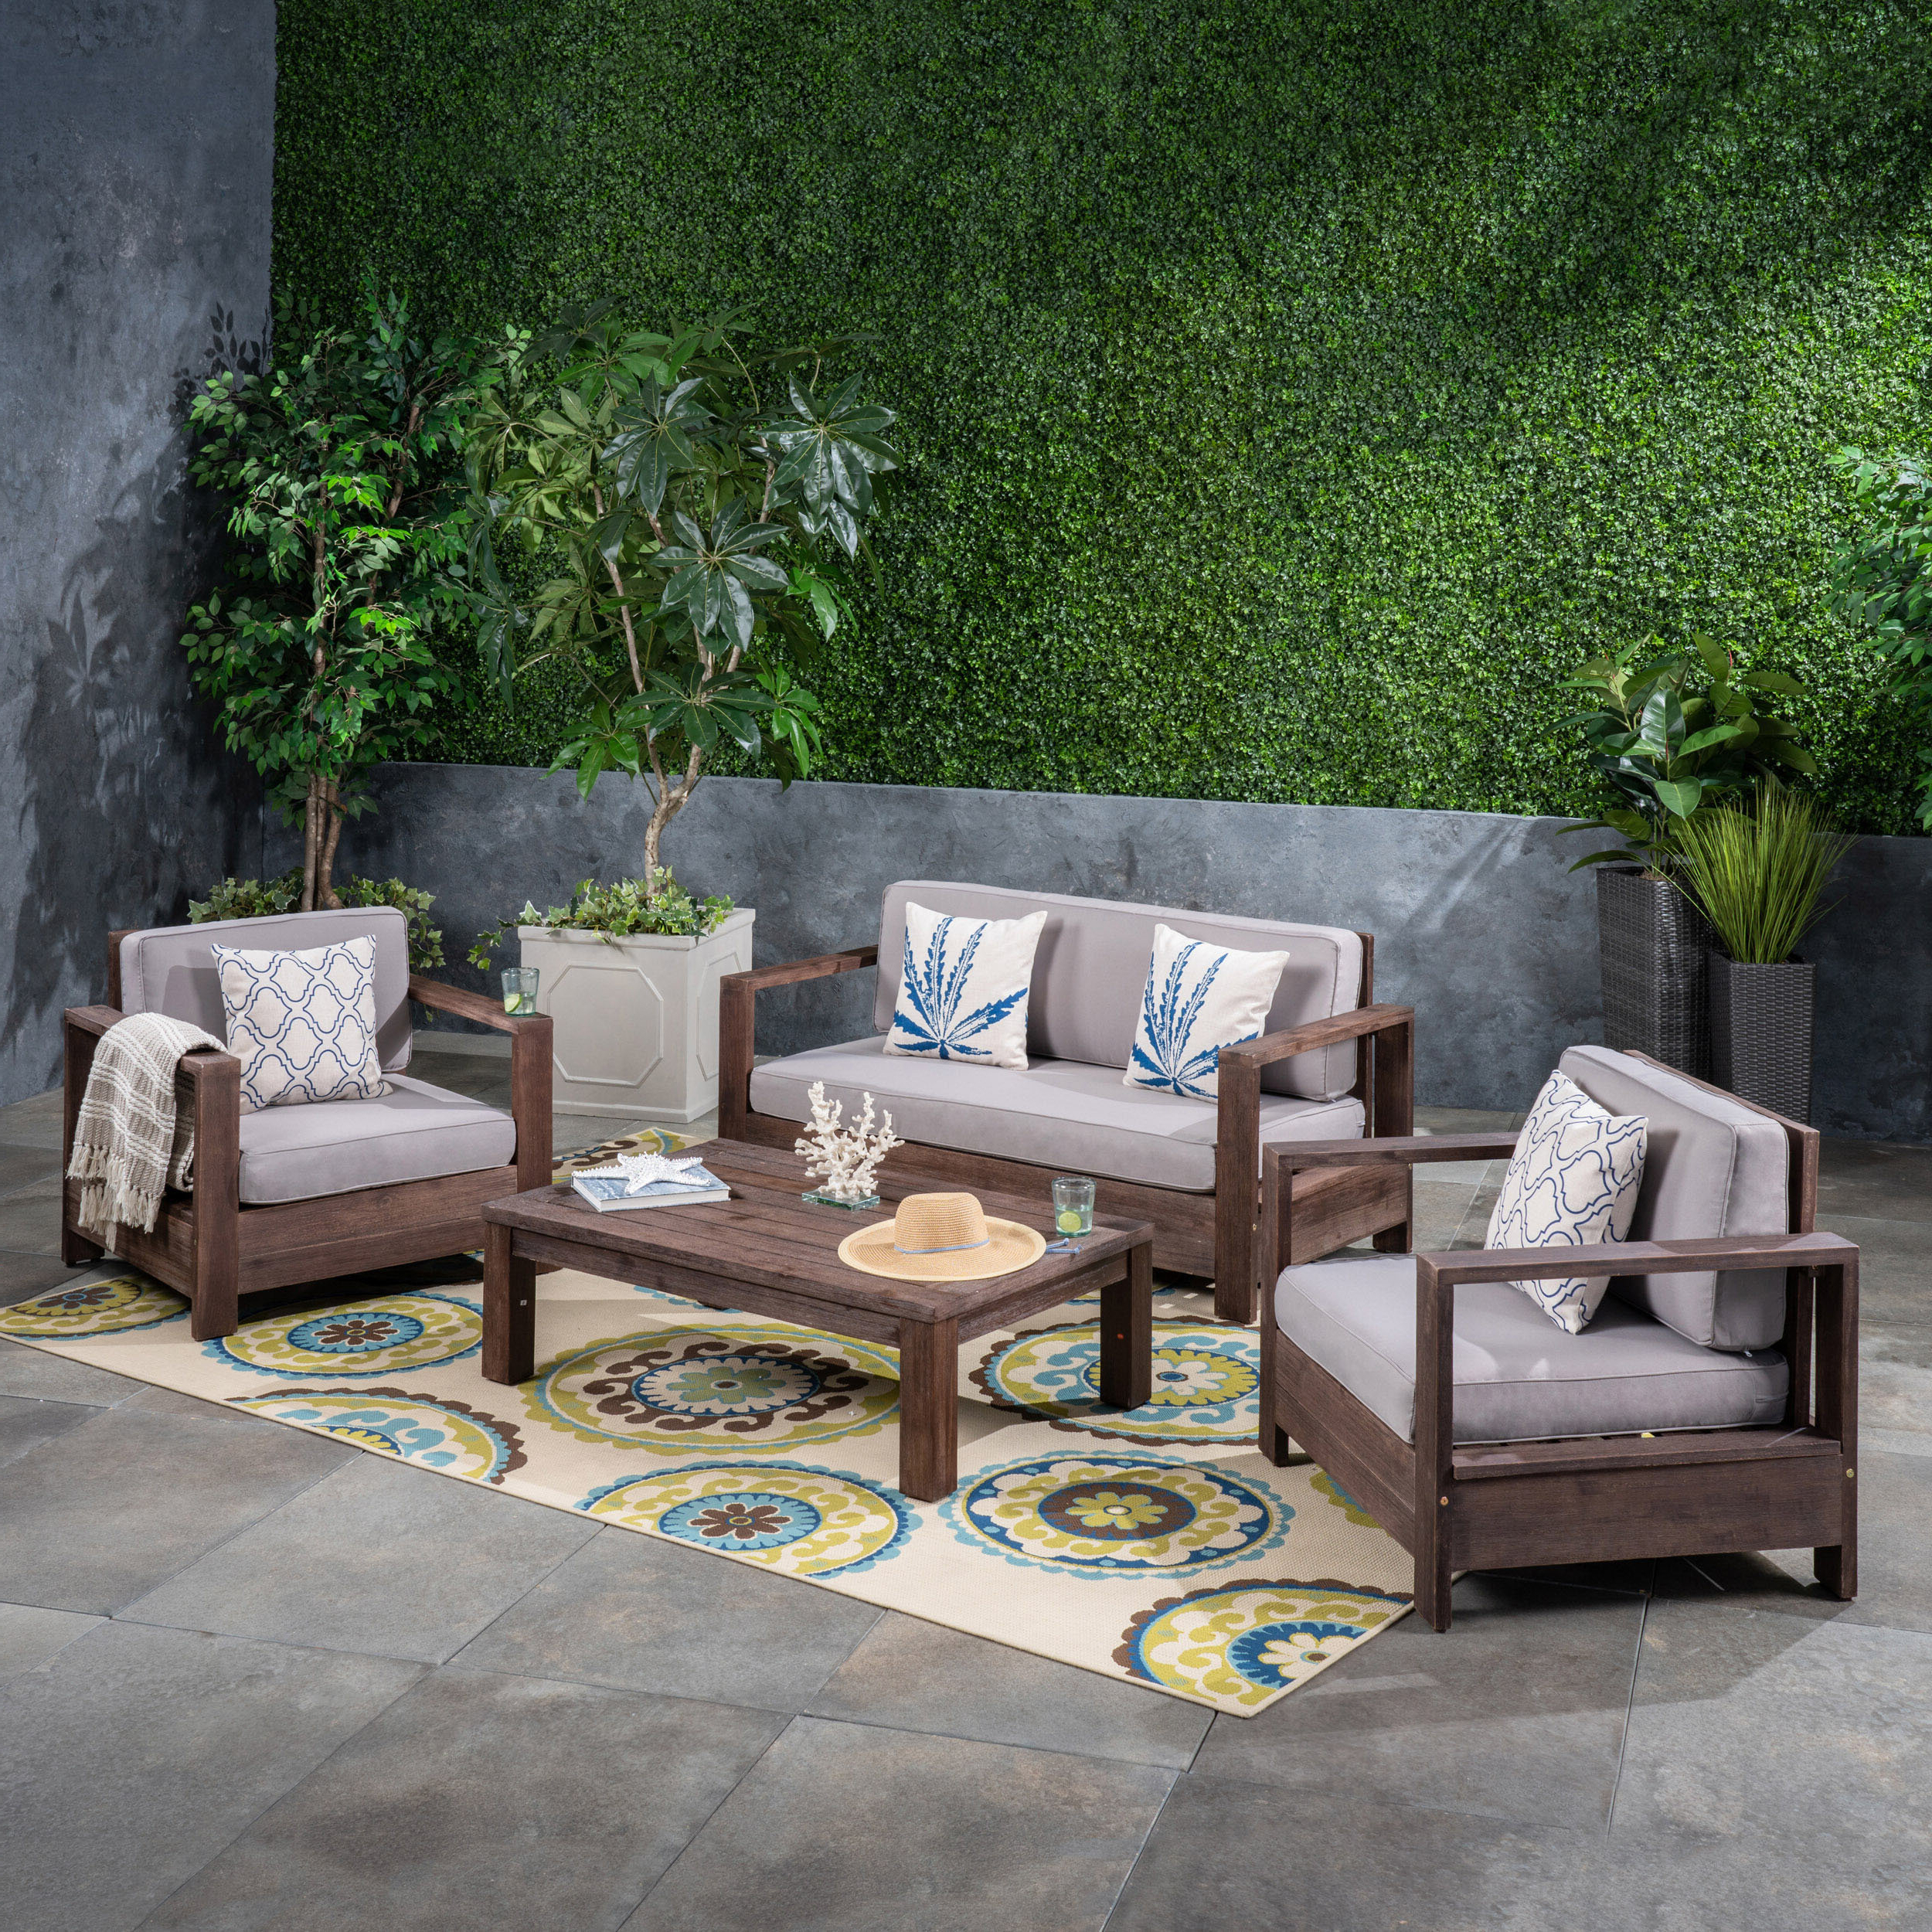 Newest Landis Loveseats With Cushions Regarding Landis 4 Piece Sofa Seating Group With Cushions (View 3 of 25)